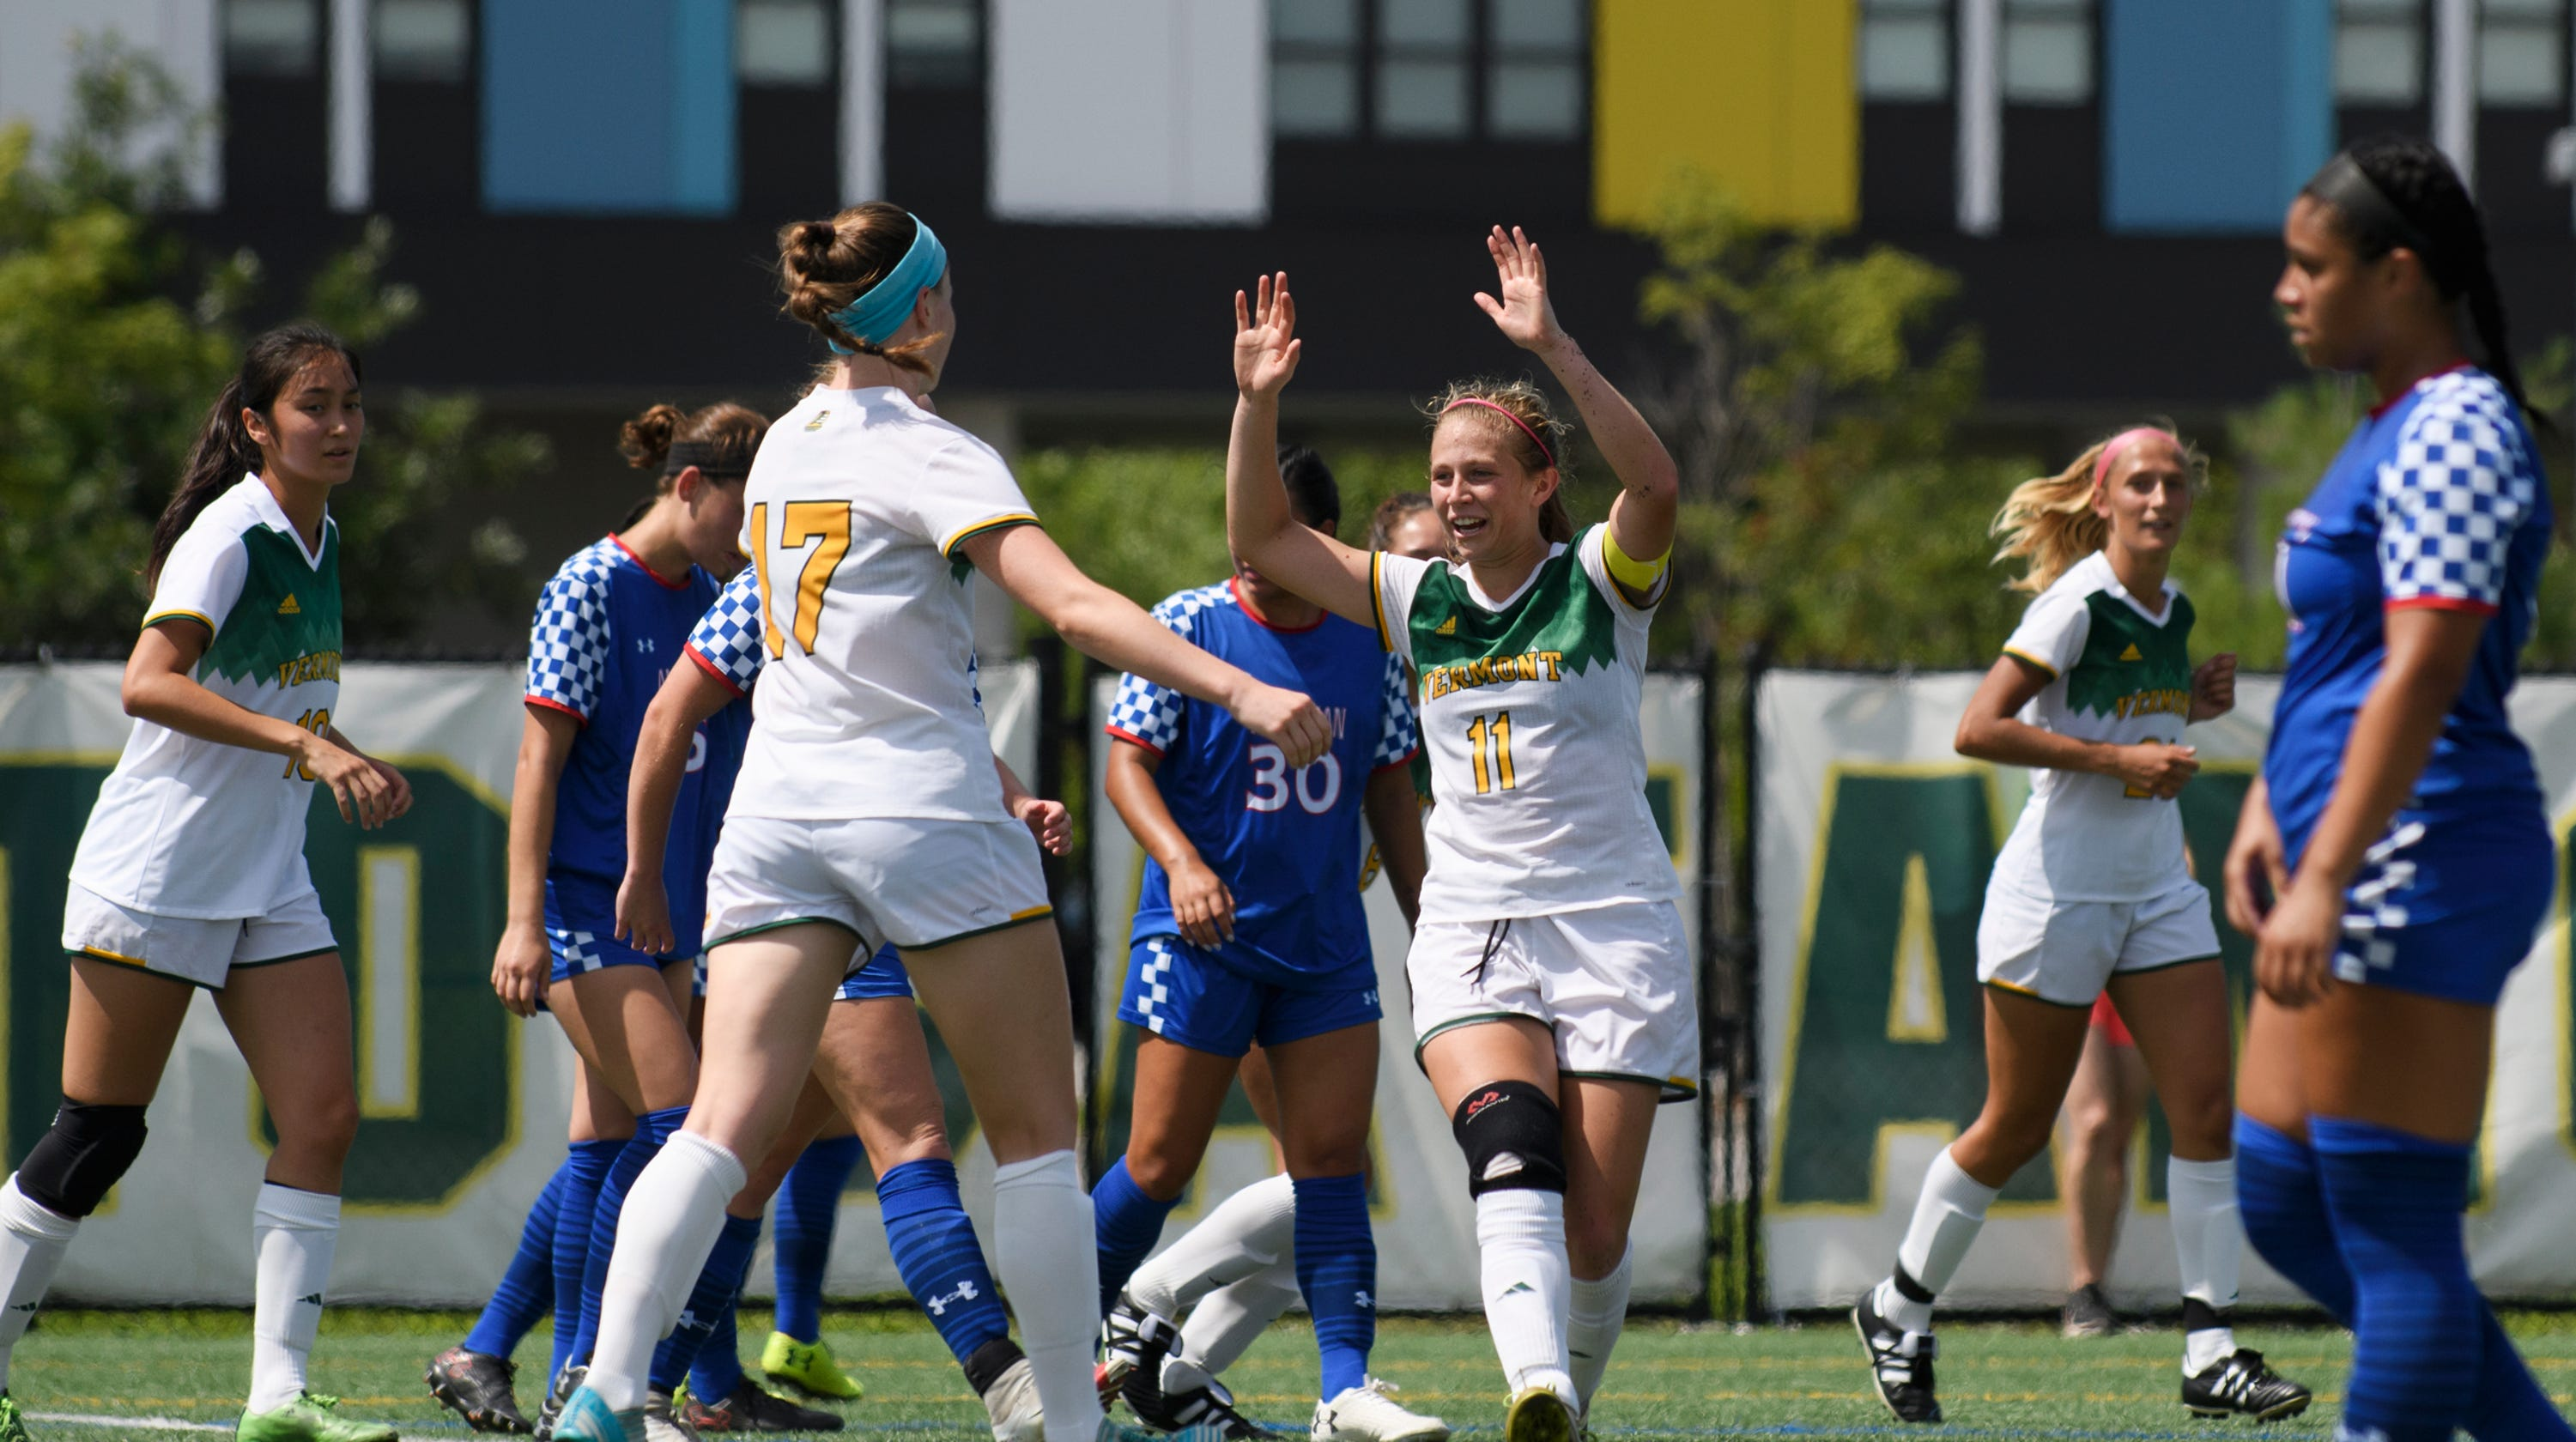 womens non conference soccer action - HD2400×1600